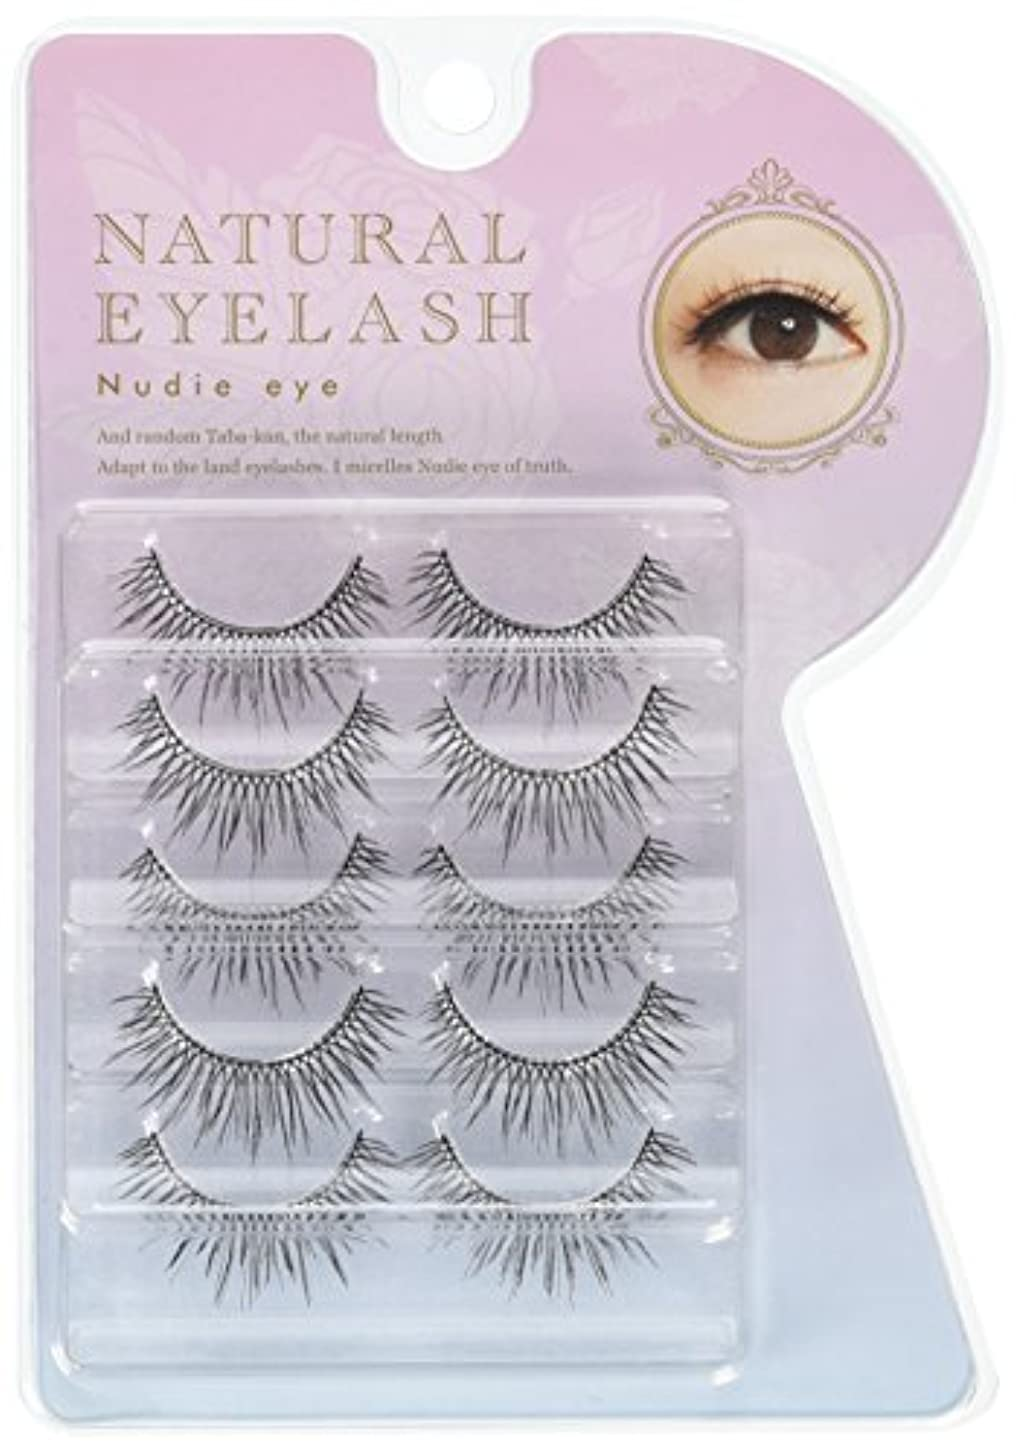 銀座コスメティックラボ EYEMAZING NATURAL EYELASH Nudie eye